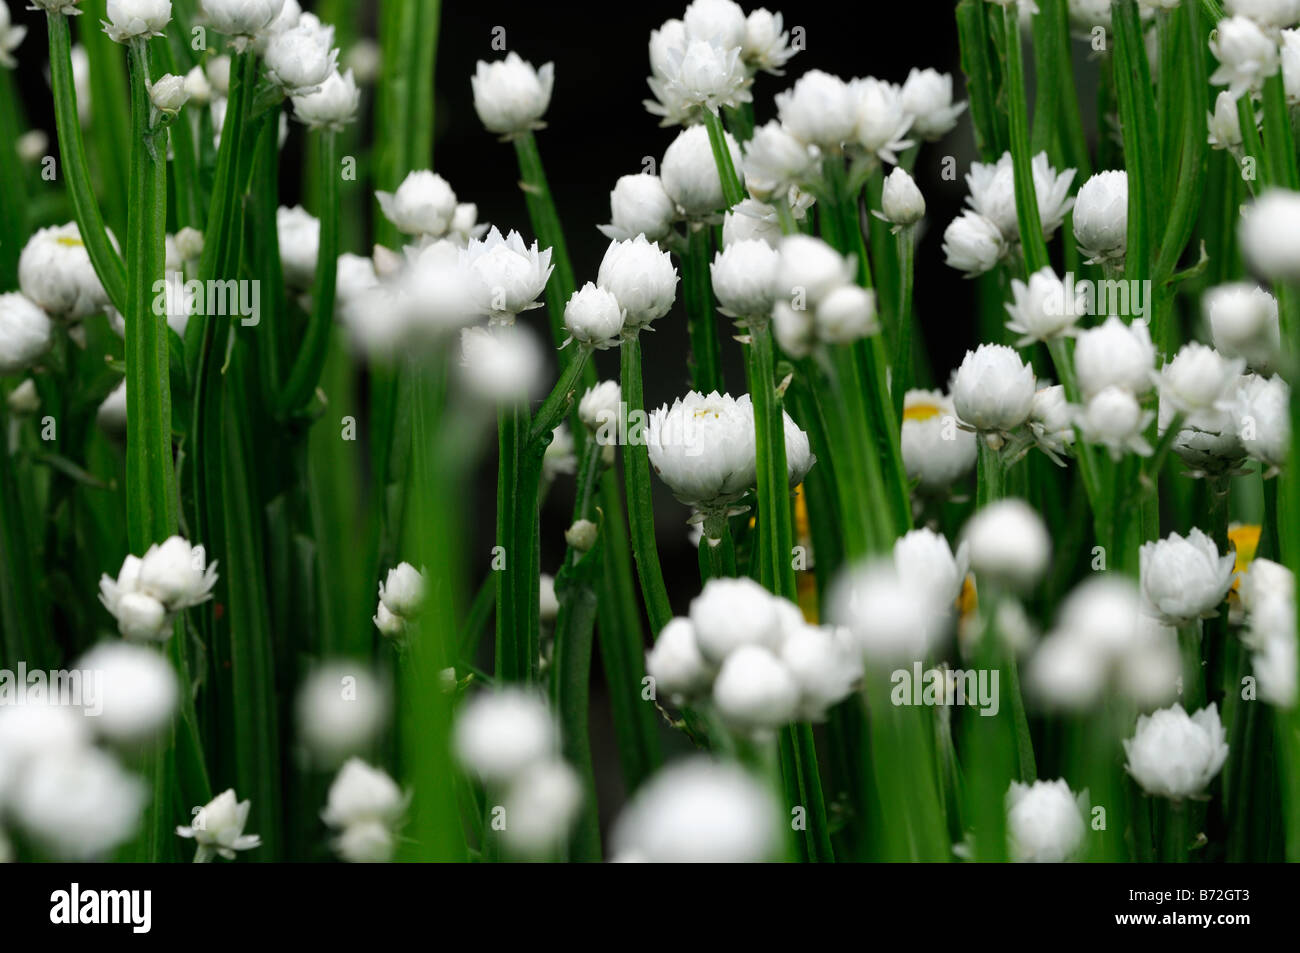 Ammobium Alatum Bikini Winged Everlasting White And Yellow Small